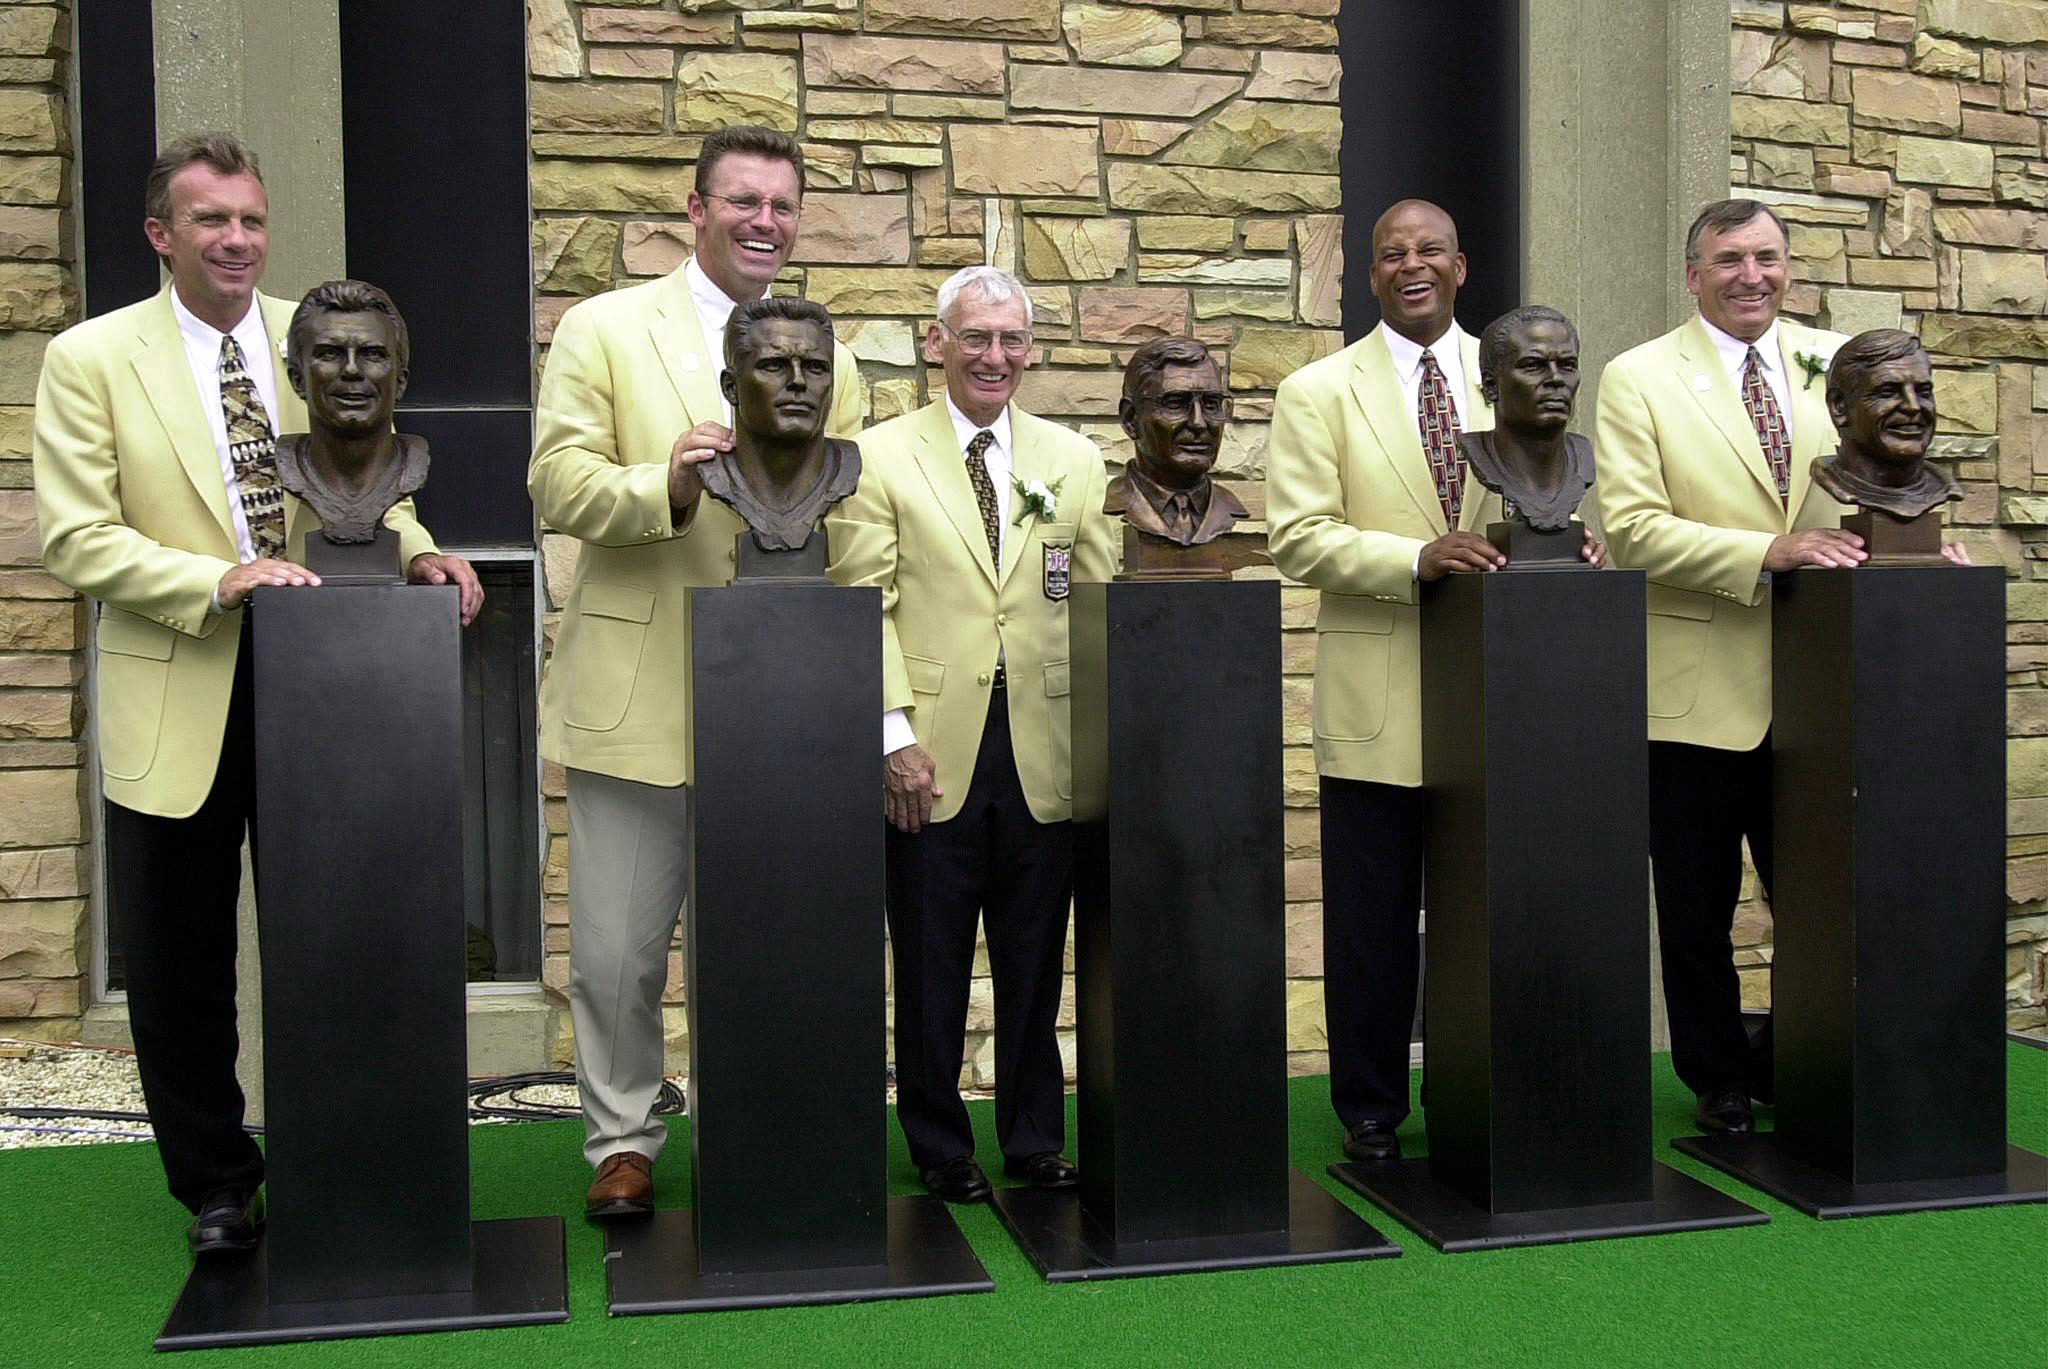 Pro Football Hall of fame enshrinees pose with their busts in front of the Pro Footbal Hall of Fame 29 July 2000 at the Pro Football Hall of Fame in Canton, OH. From left are: Joe Montana, Howie Long, Dan Rooney, Ronnie Lott, and Dave Wilcox.